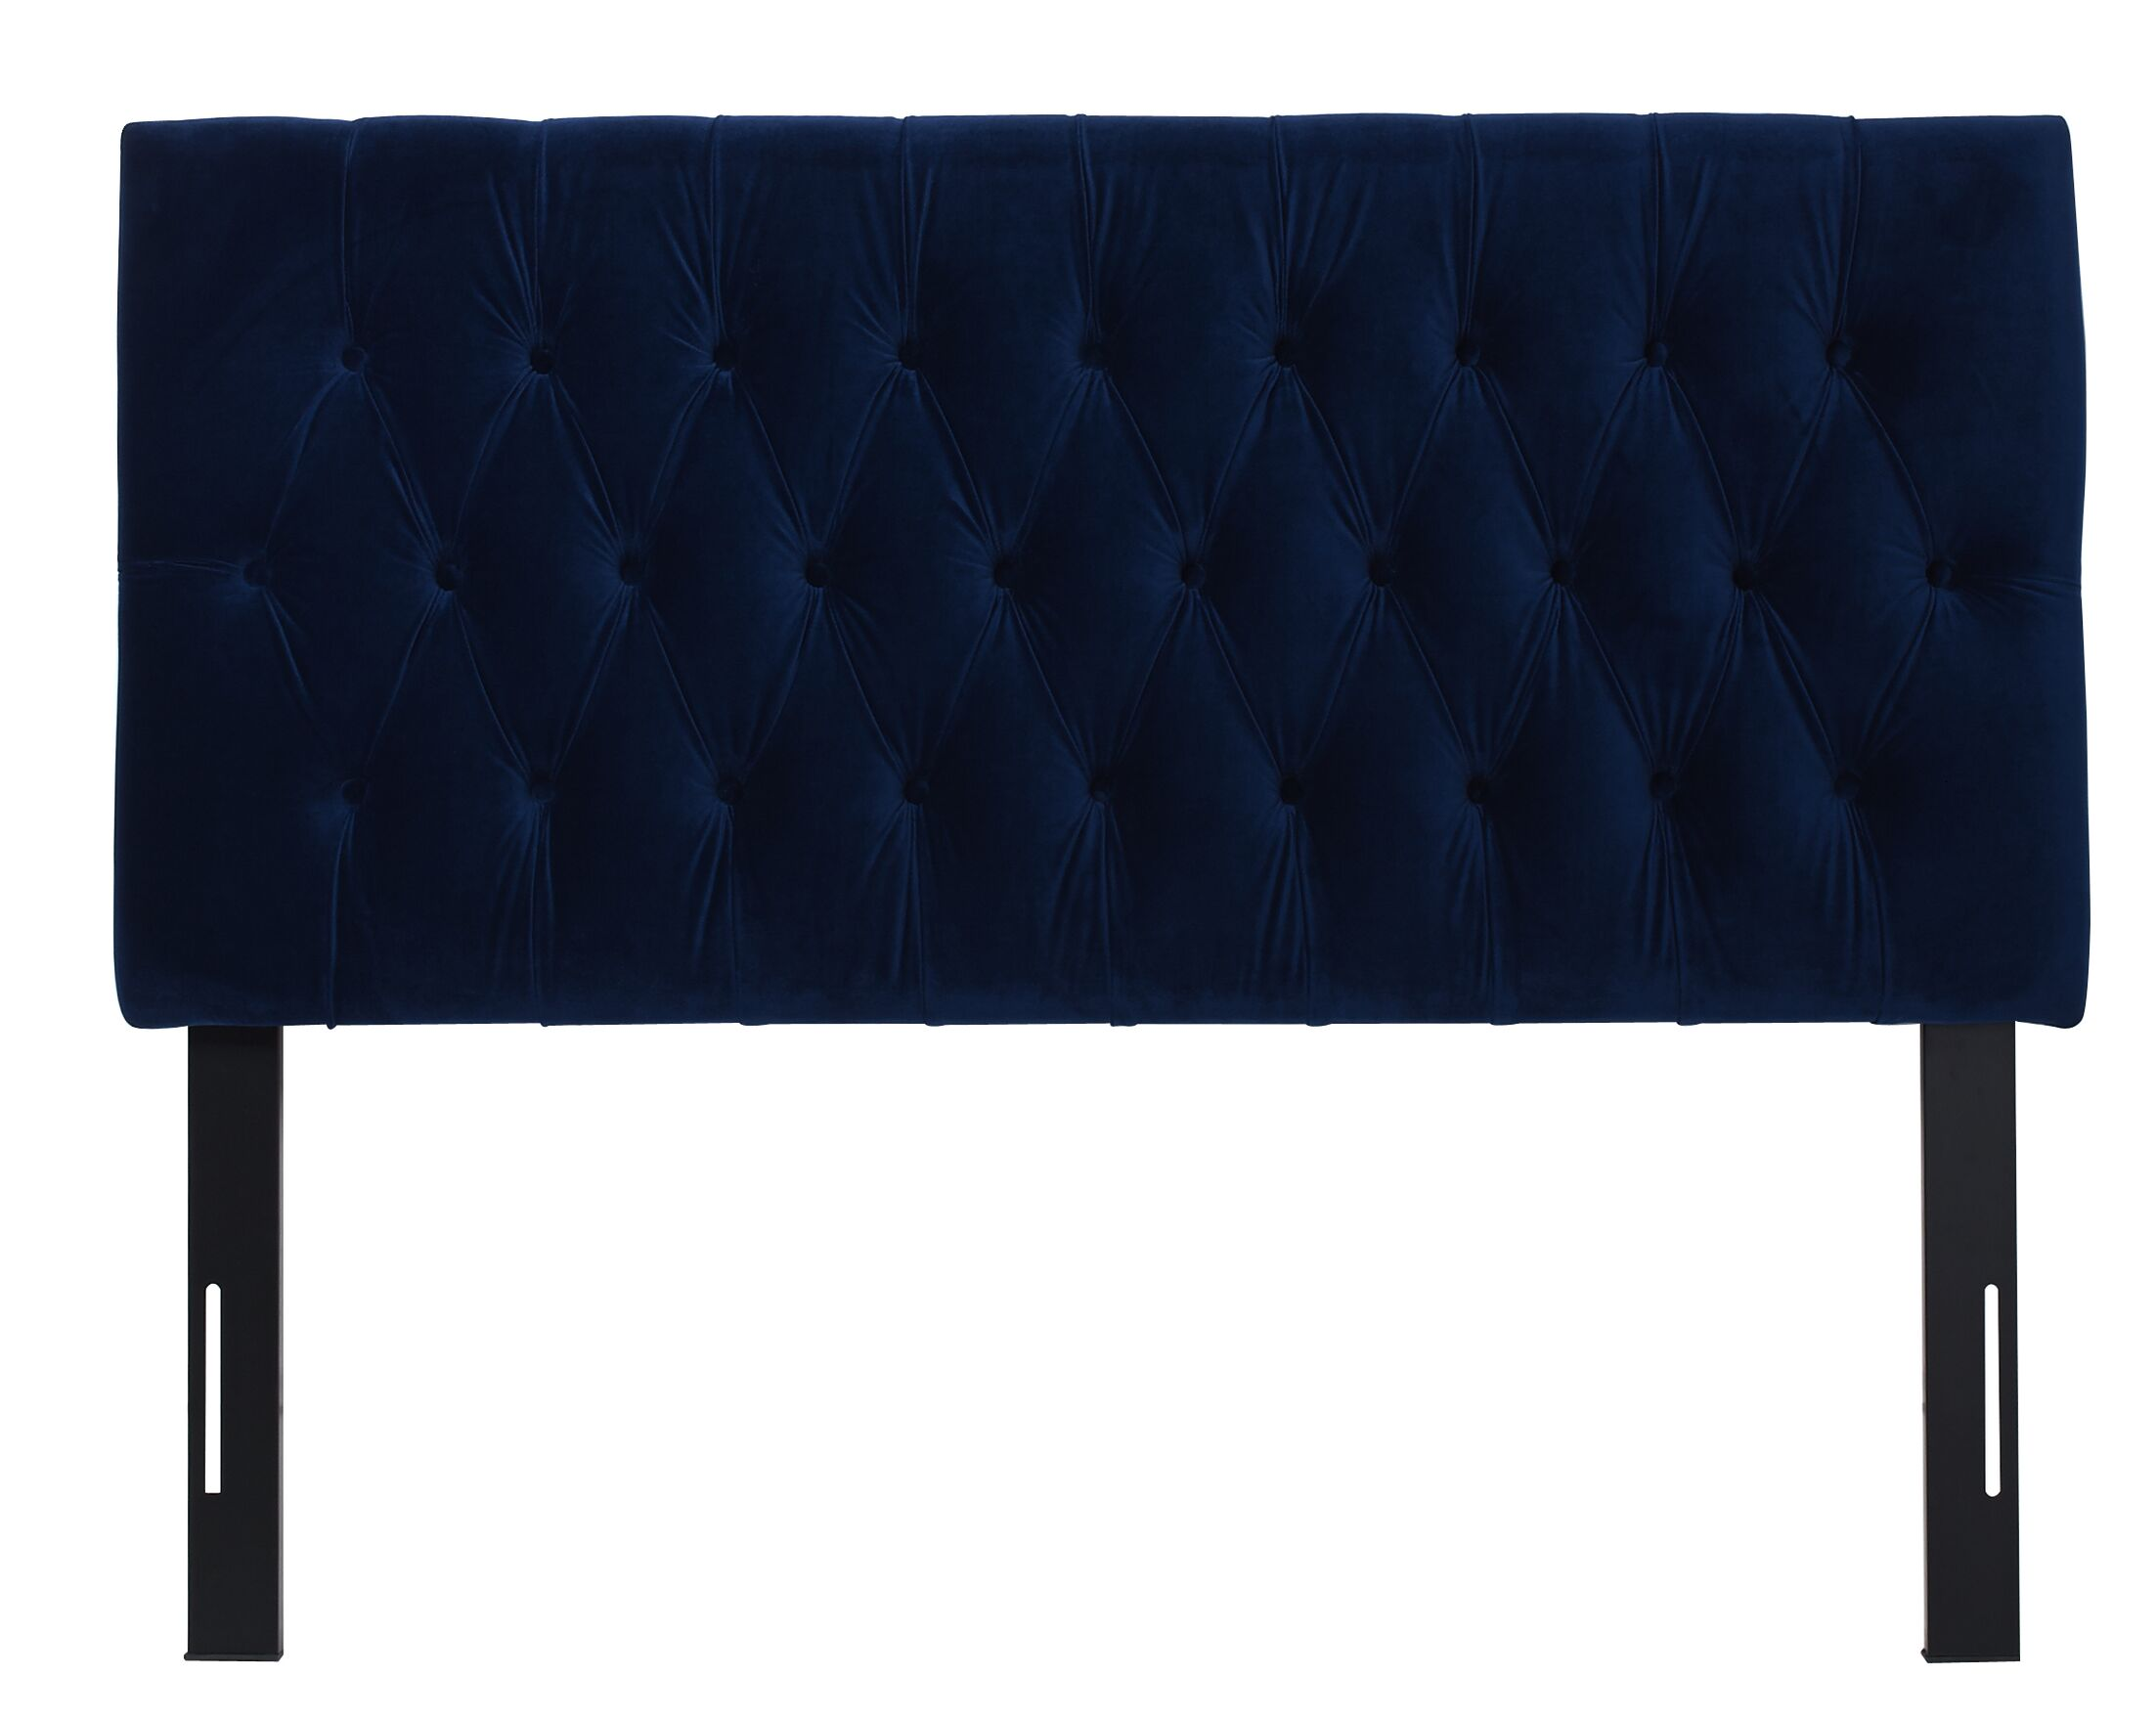 Hawtree Tufted Upholstered Panel Headboard Upholstery: Navy Blue, Size: Queen